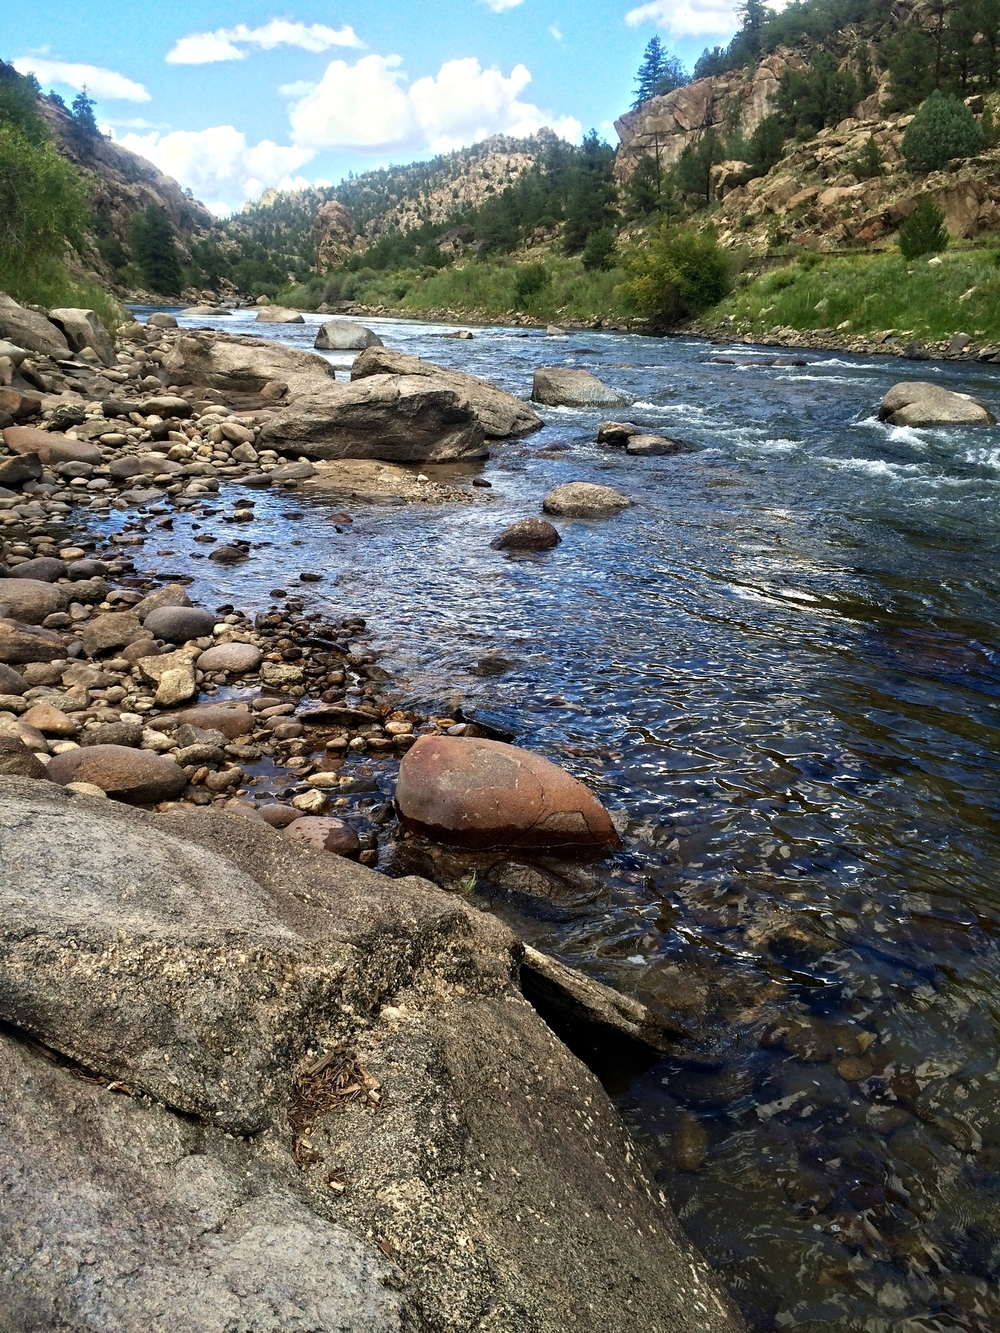 The Arkansas River in Brown's Canyon, just below my campsite.